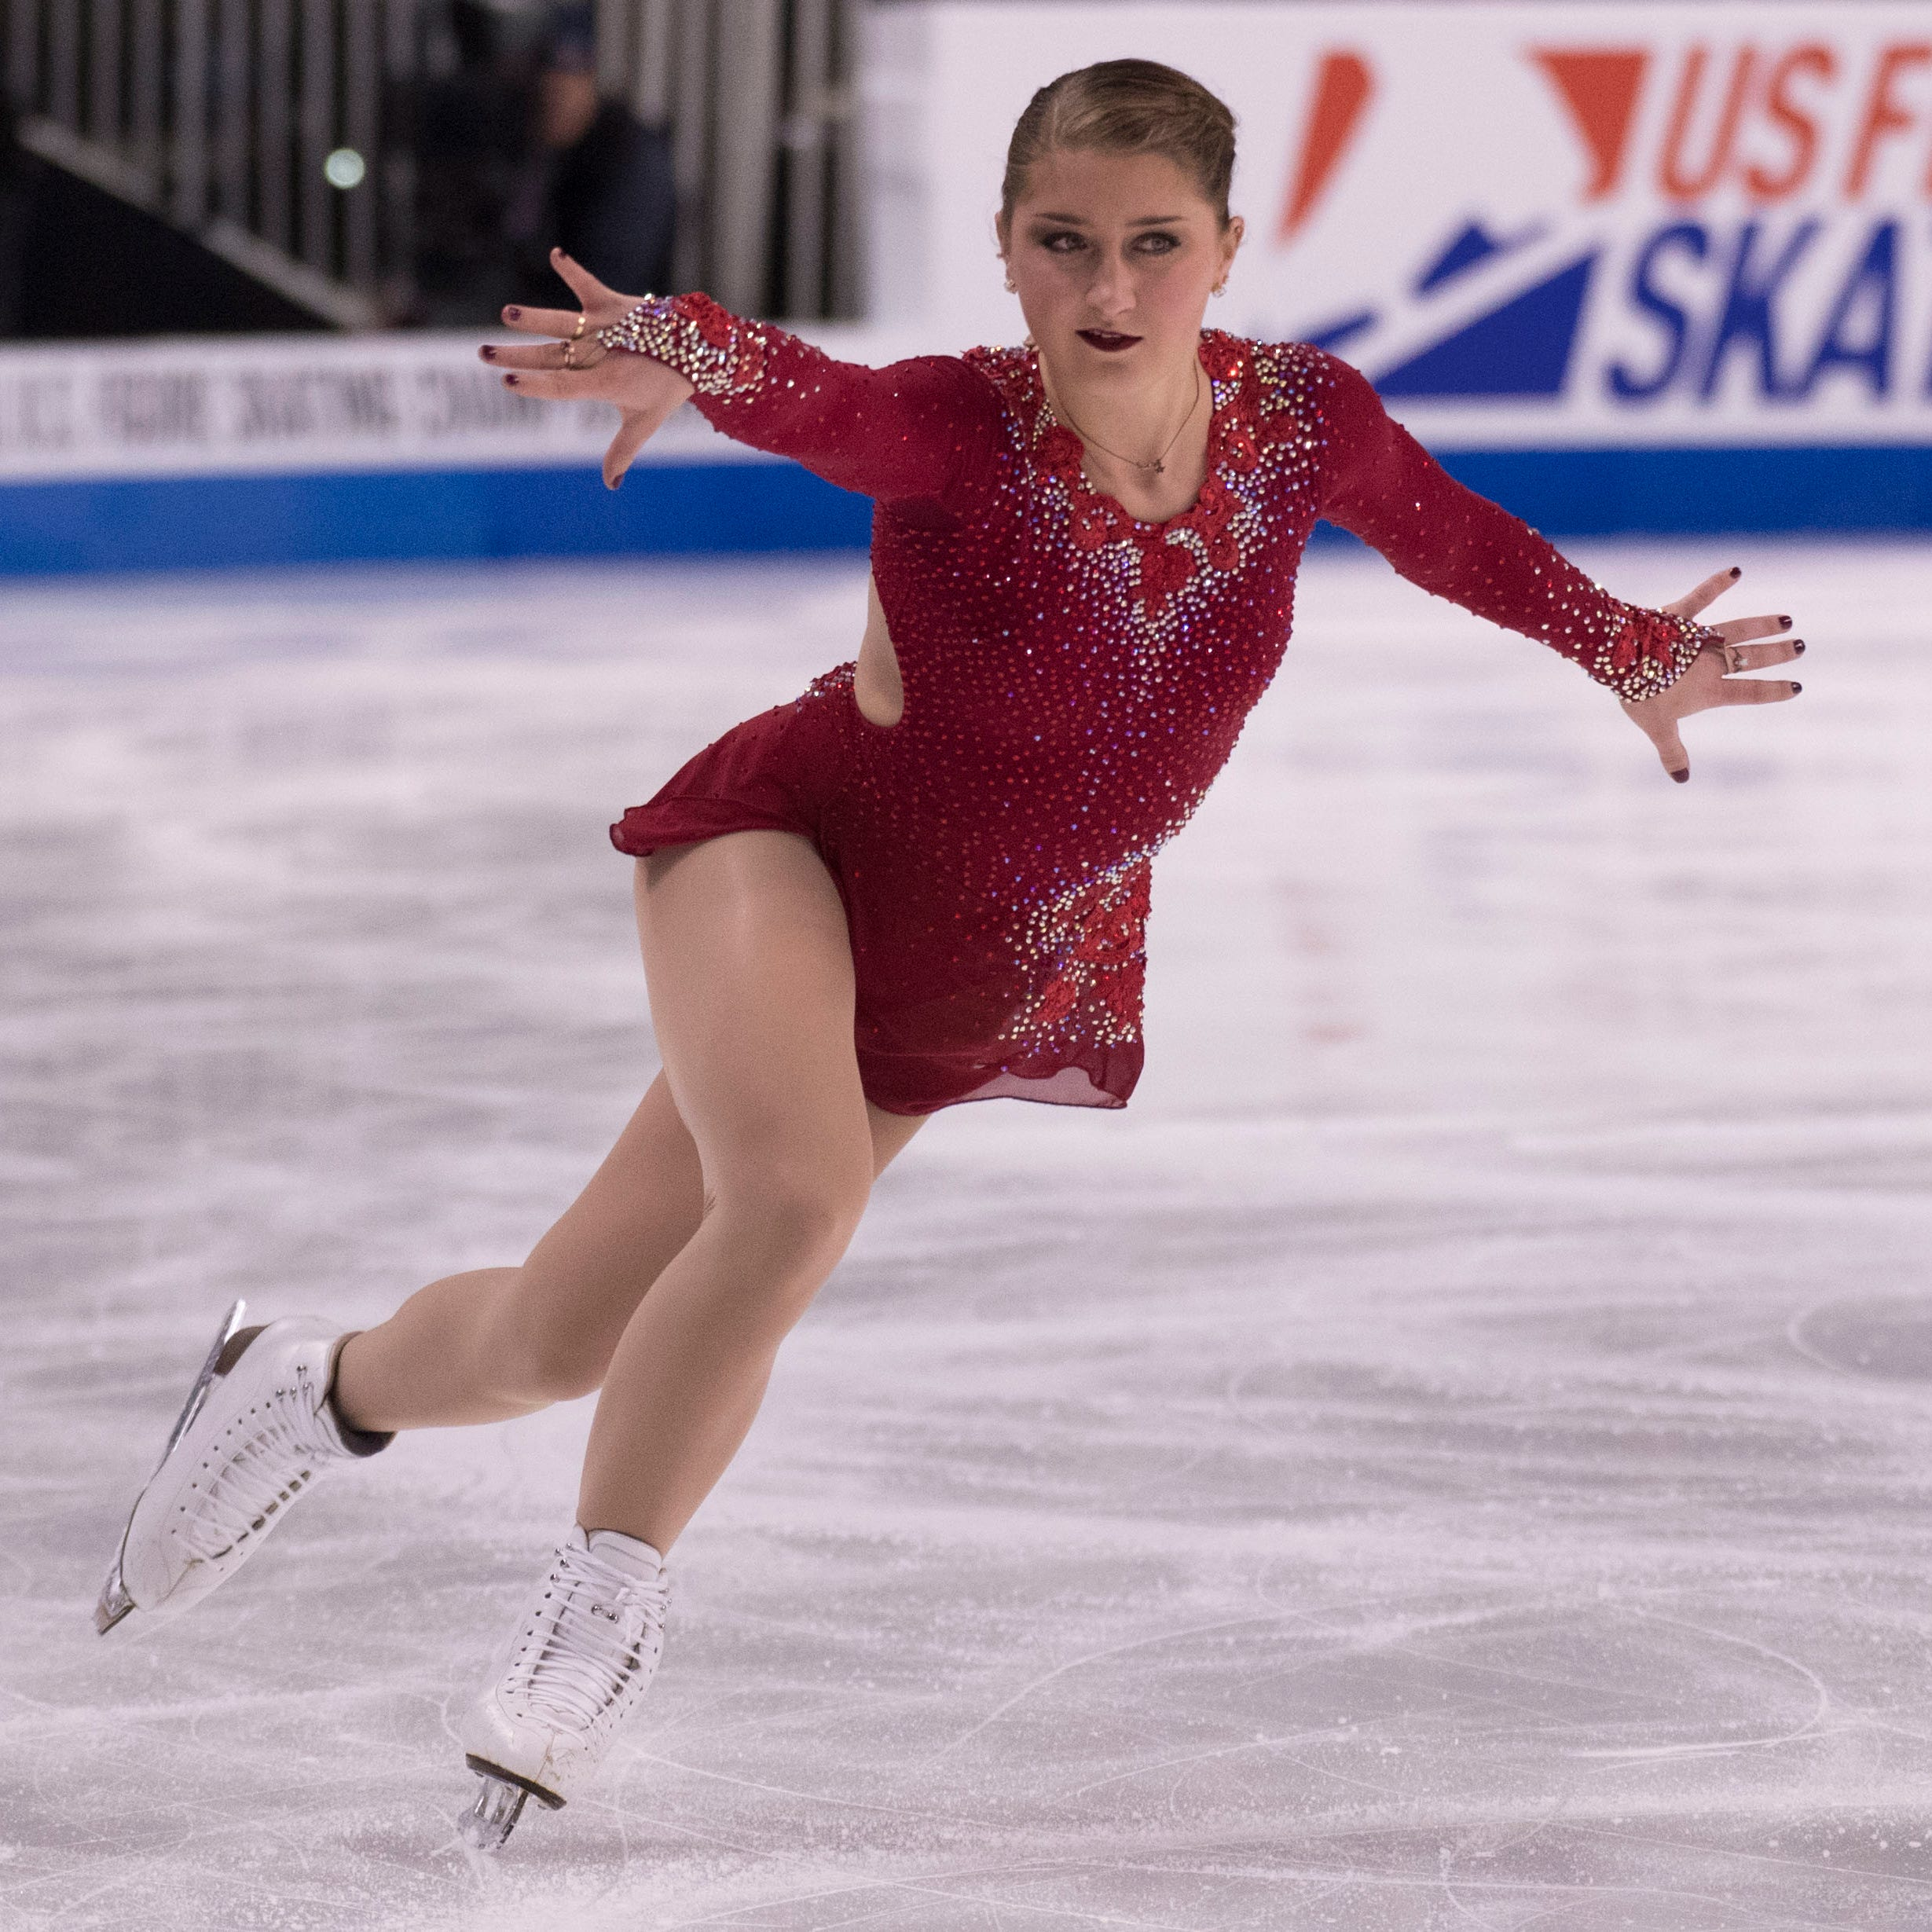 Hannah Miller on figure skating and the struggle to be thin enough